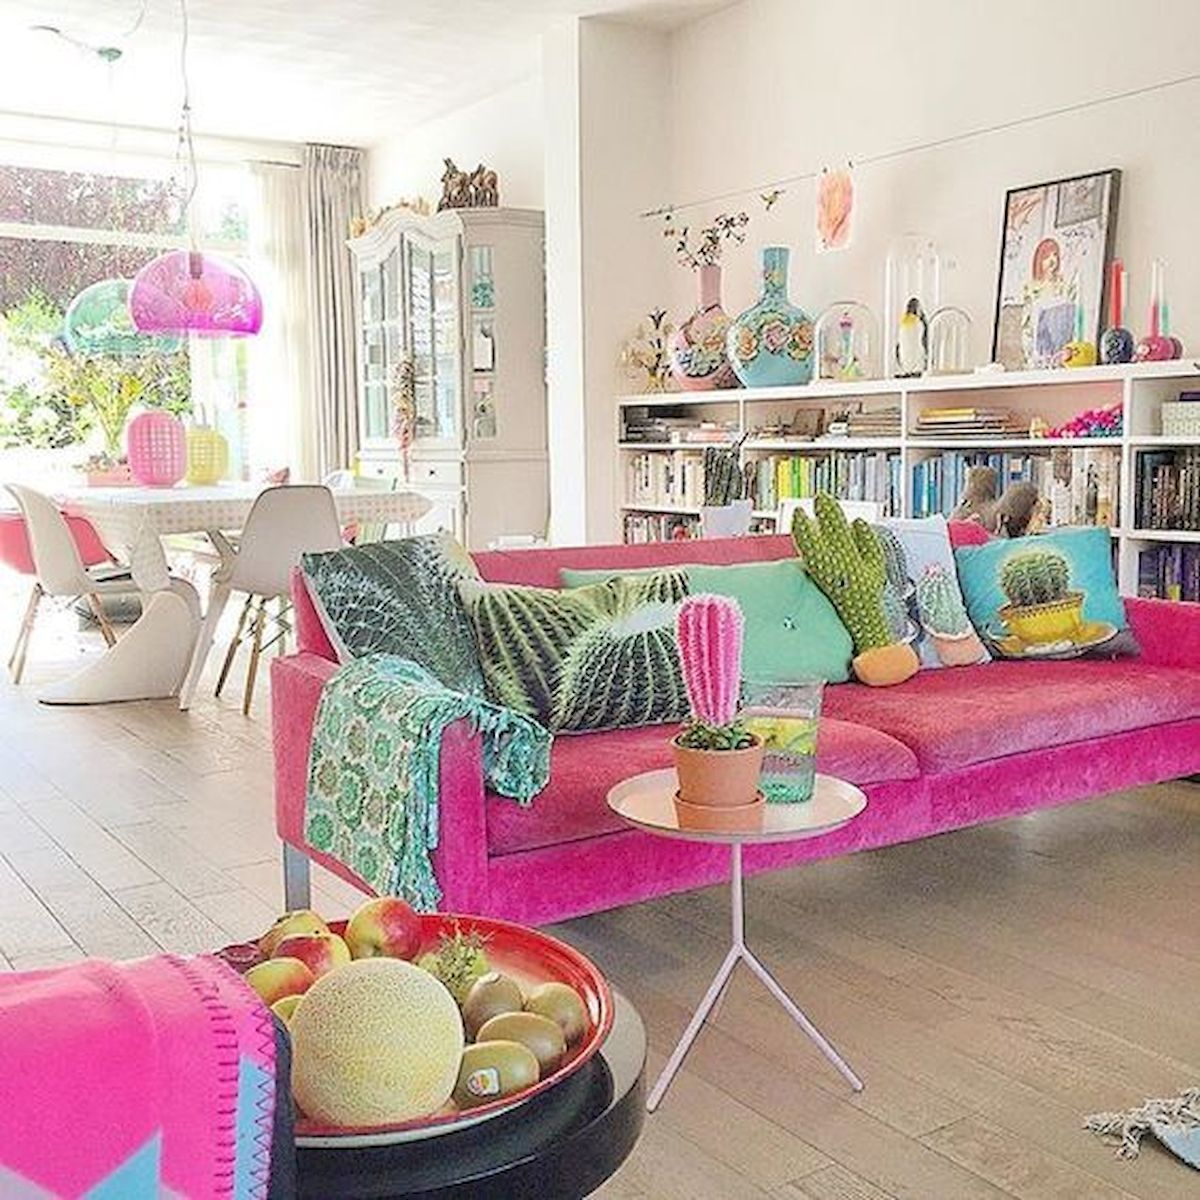 80+ Awesome Colorful Living Room Decor Ideas And Remodel for Summer Project images